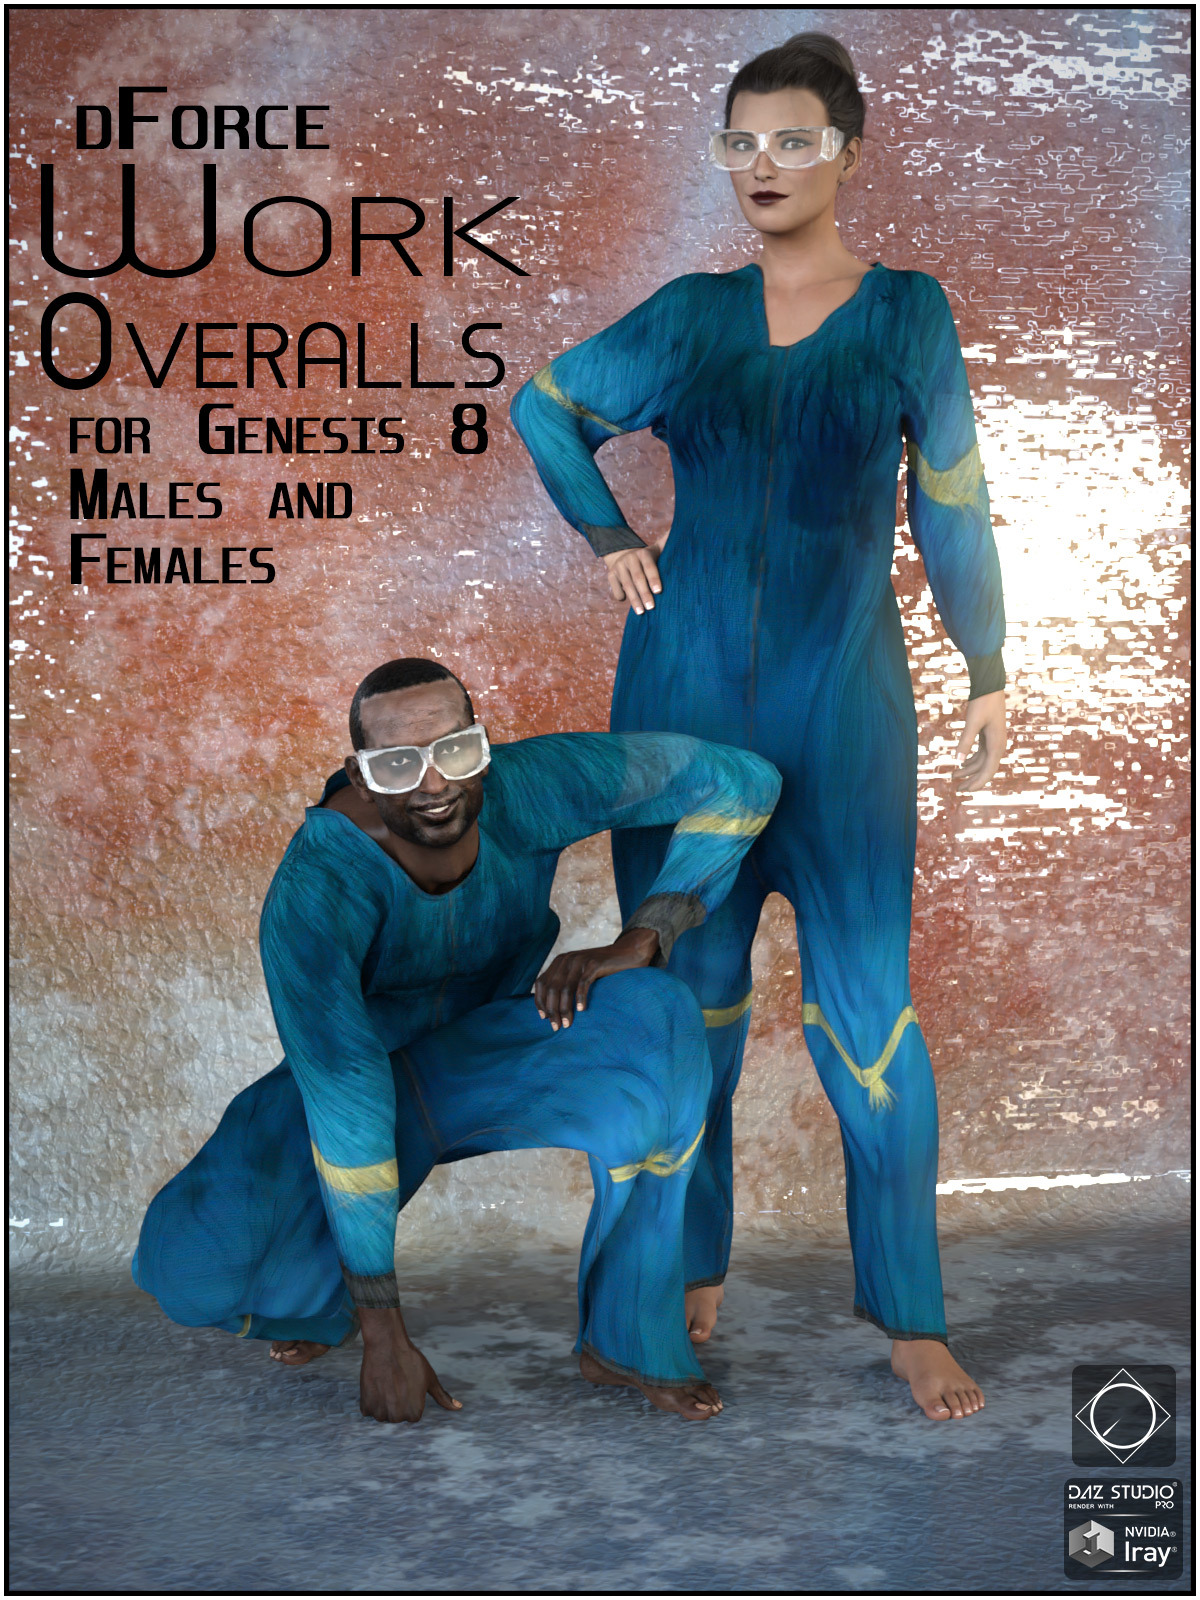 dForce Work Overalls for Genesis 8 Males and Females by SWTrium